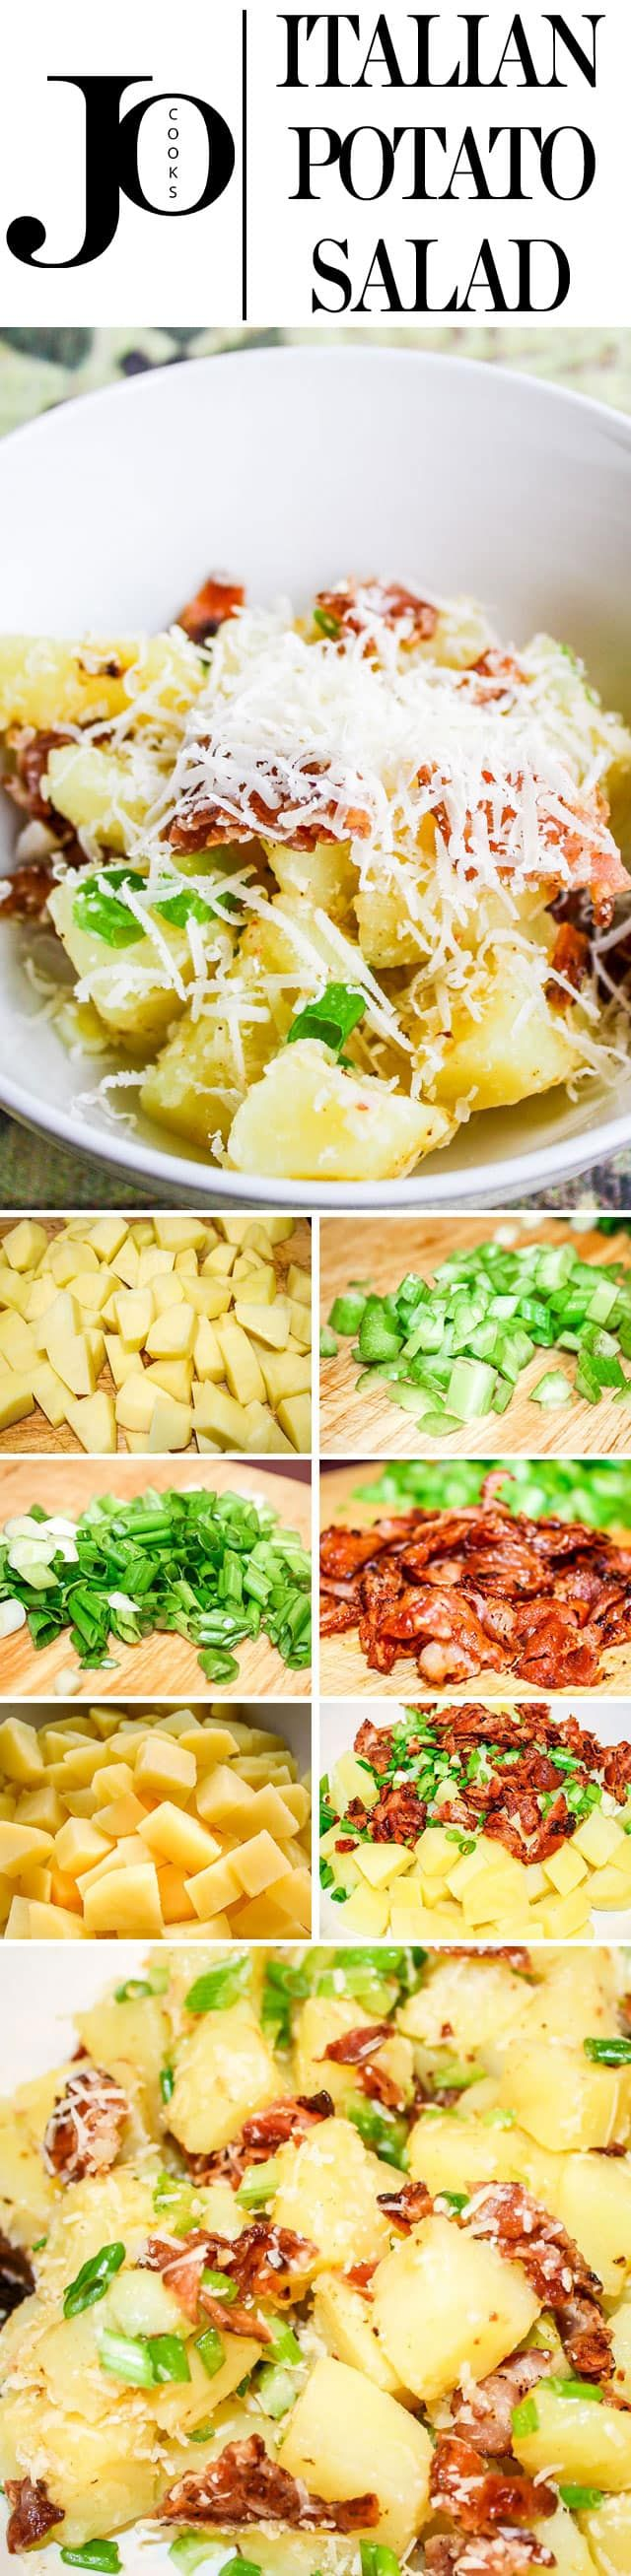 This recipe for Italian Potato Salad, mayo free, a starter or side recipe, is simple, delicious and an all time favorite. Perfect for a potluck or a picnic, it's the salad you'll always be craving. #potatosalad #italian via @jocooks